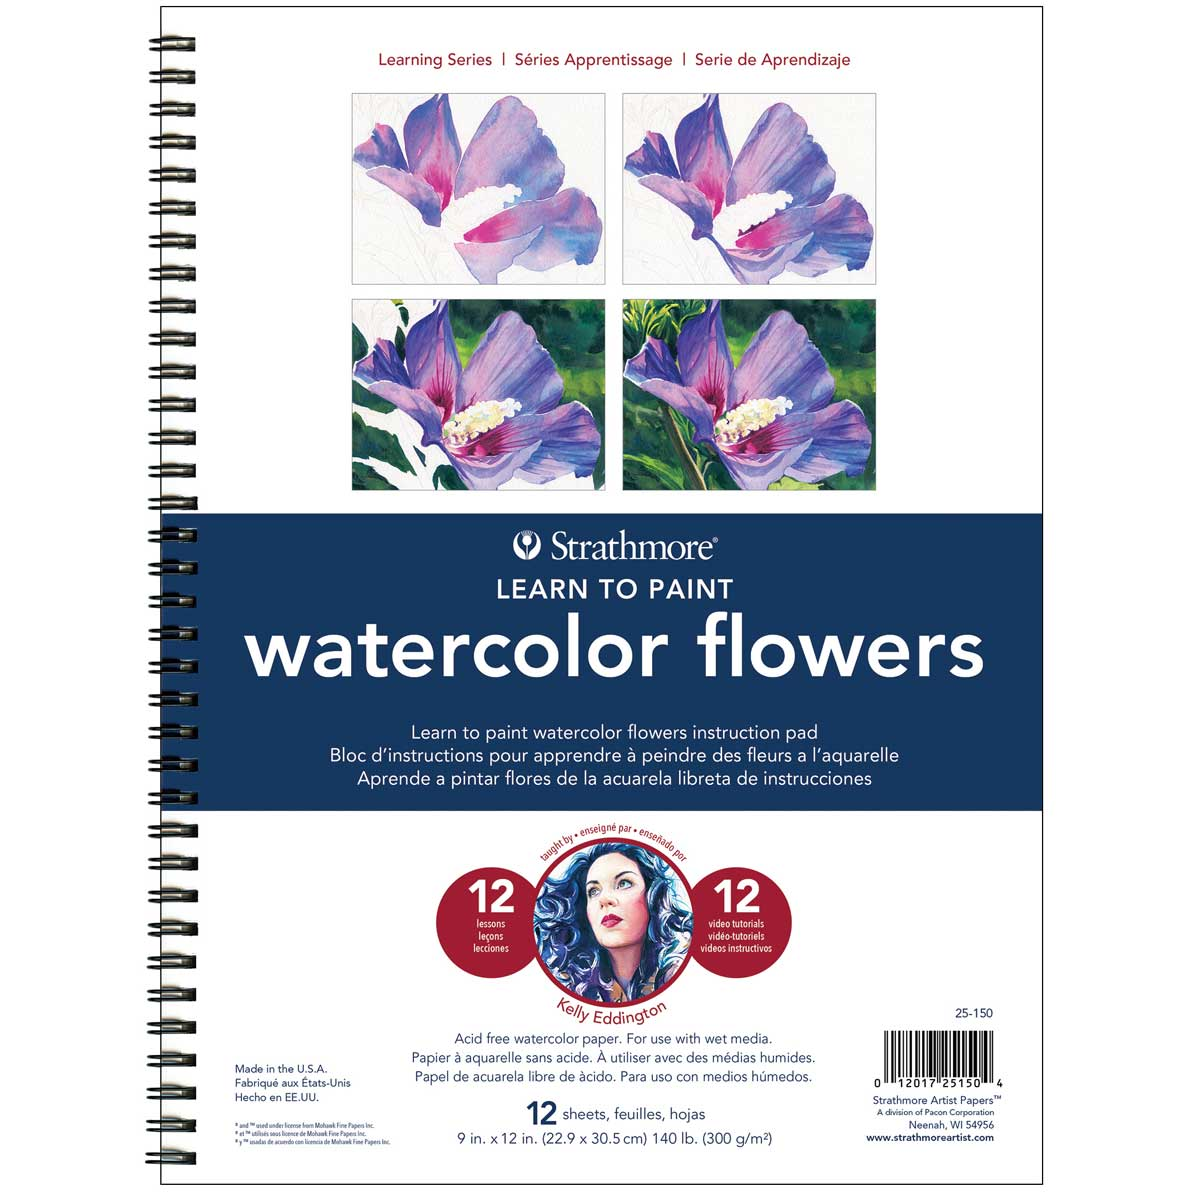 Strathmore Learn To Paint -Watercolor Flowers